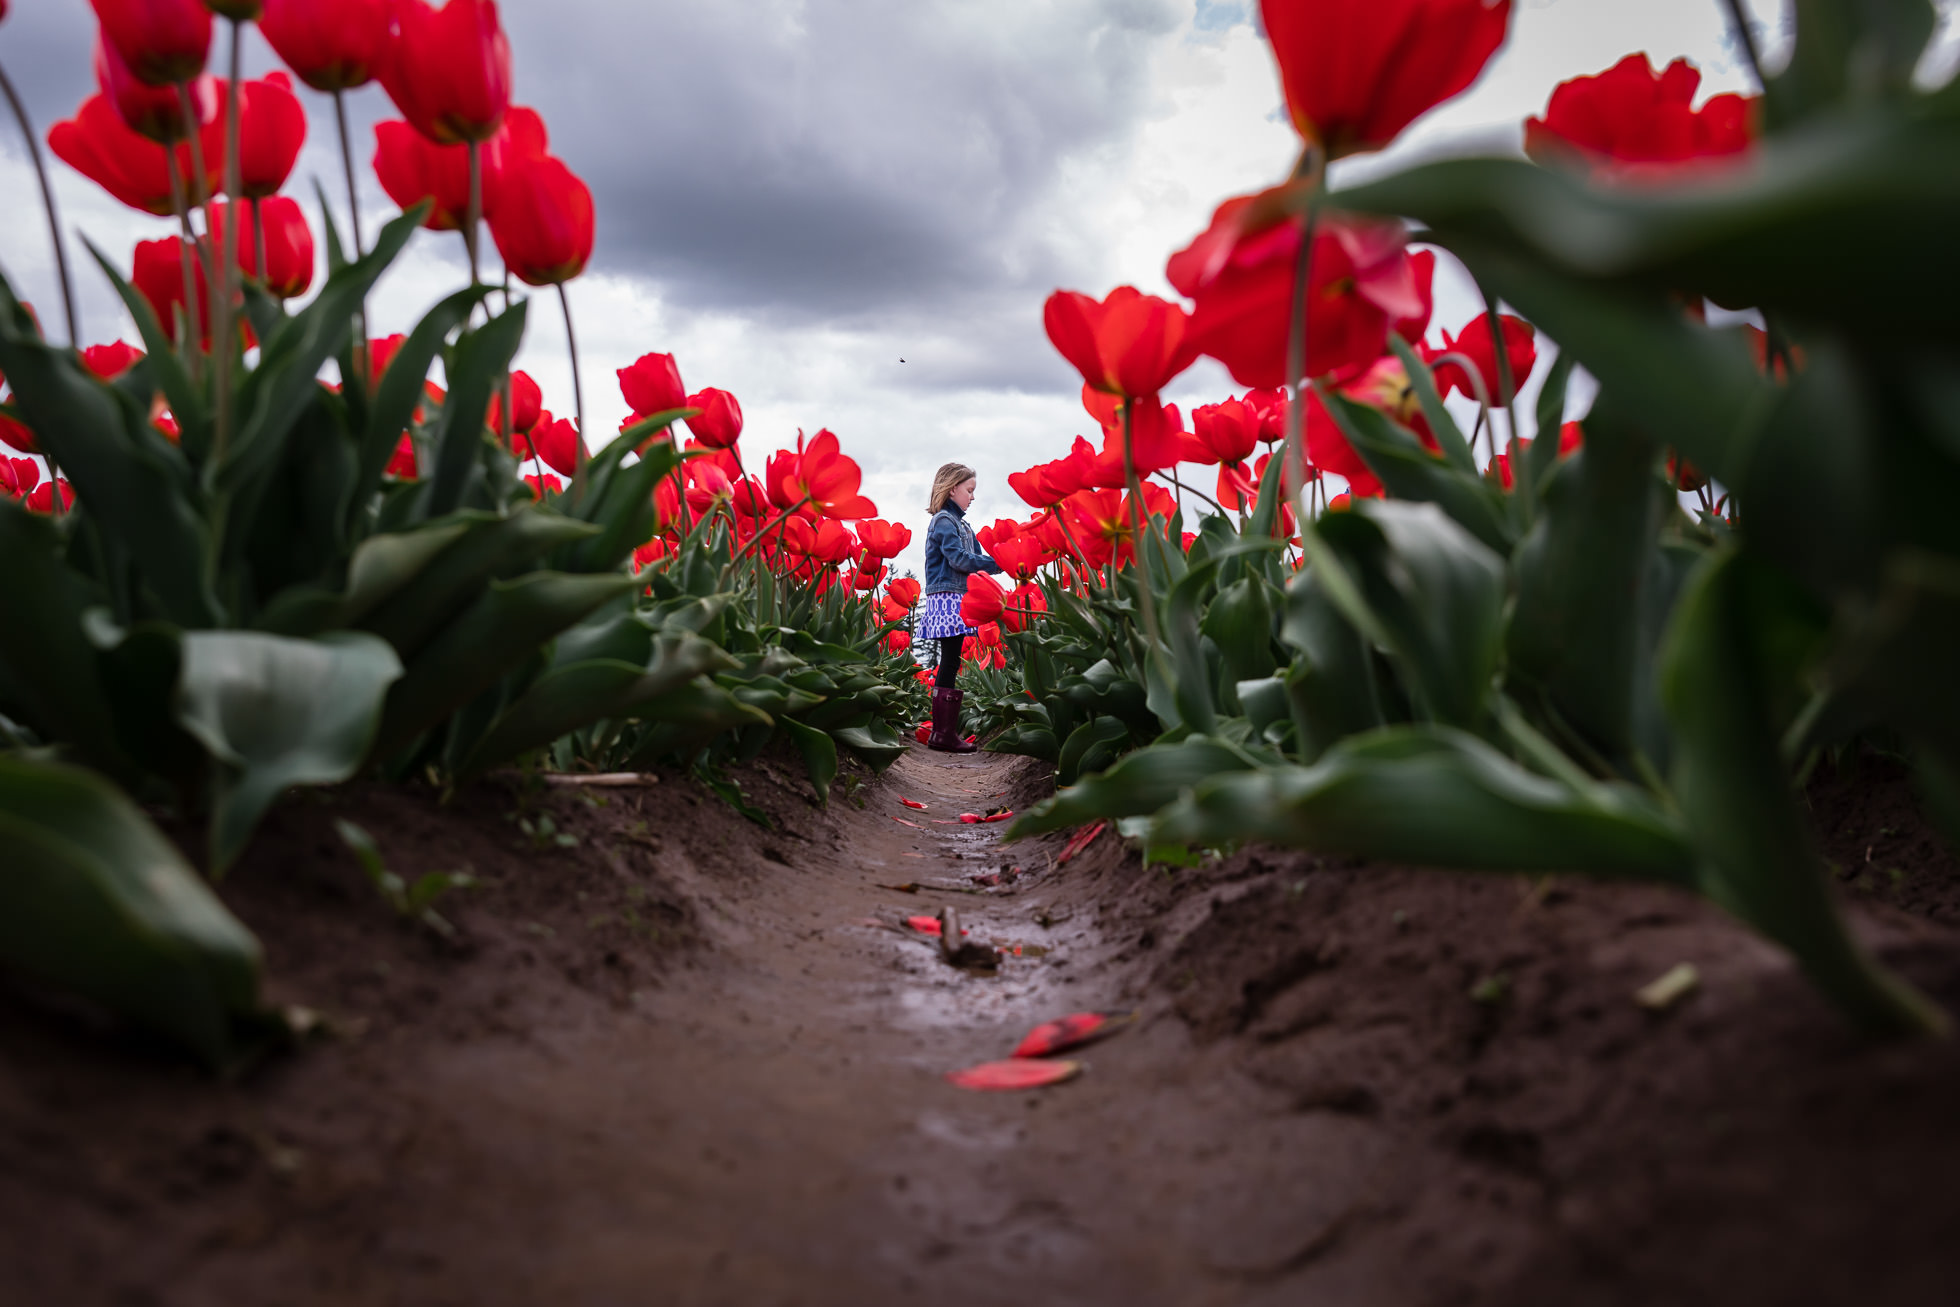 low perspective image of girl standing in red tulips by rebecca hunnicutt farren portland oregon and vancouver washington family lifestyle photographer